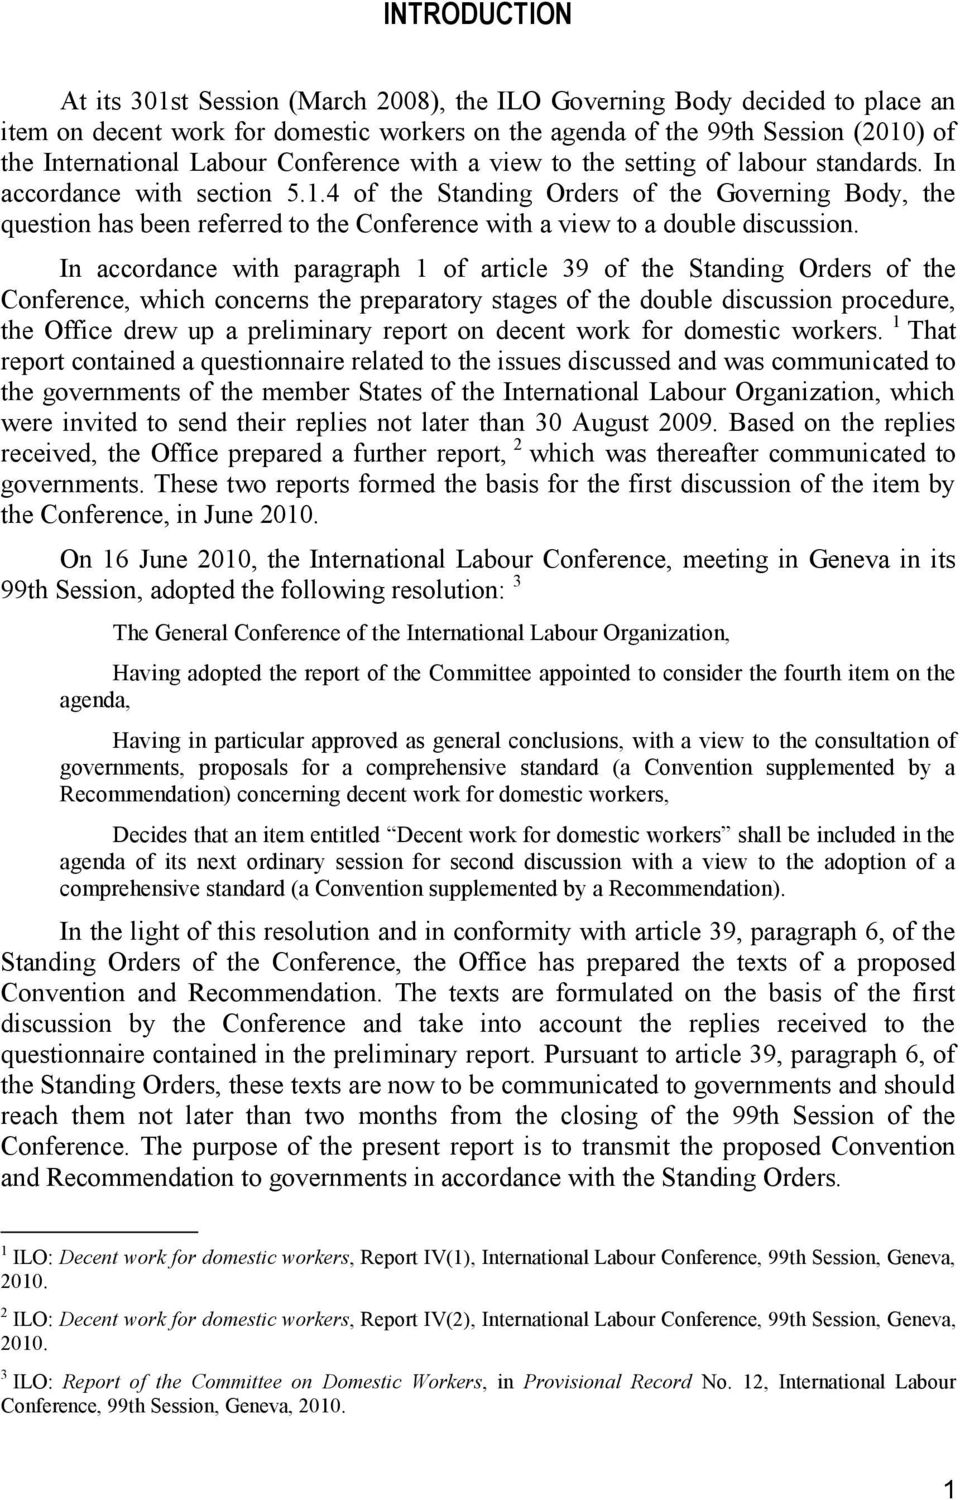 4 of the Standing Orders of the Governing Body, the question has been referred to the Conference with a view to a double discussion.